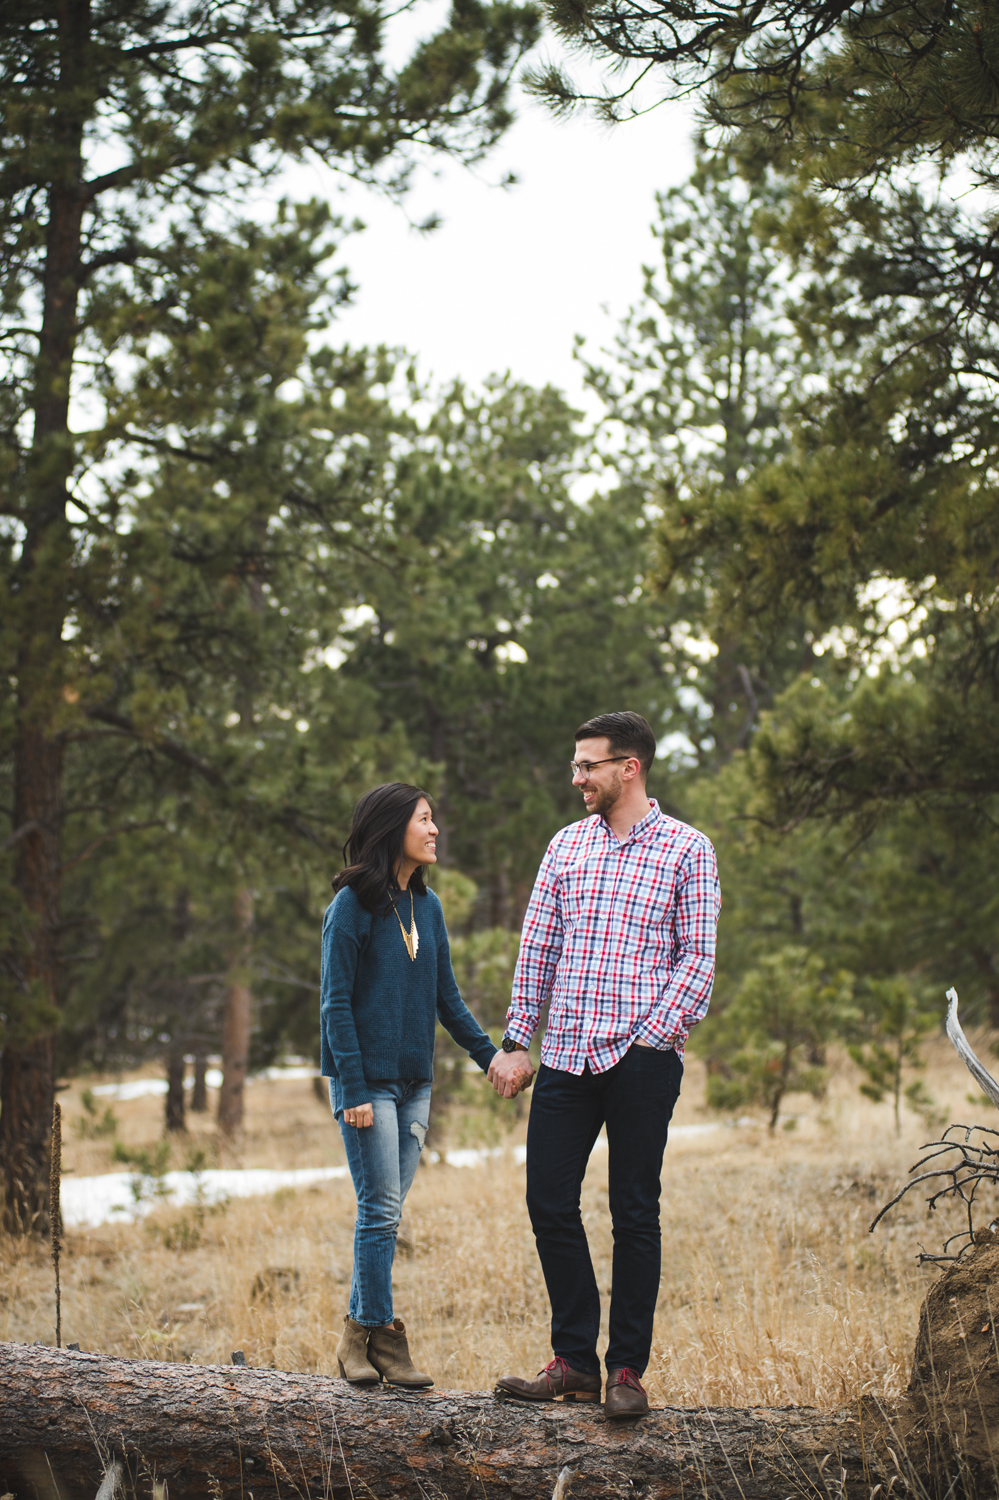 TiffanyandMark_Engaged_0201_squarespace.jpg